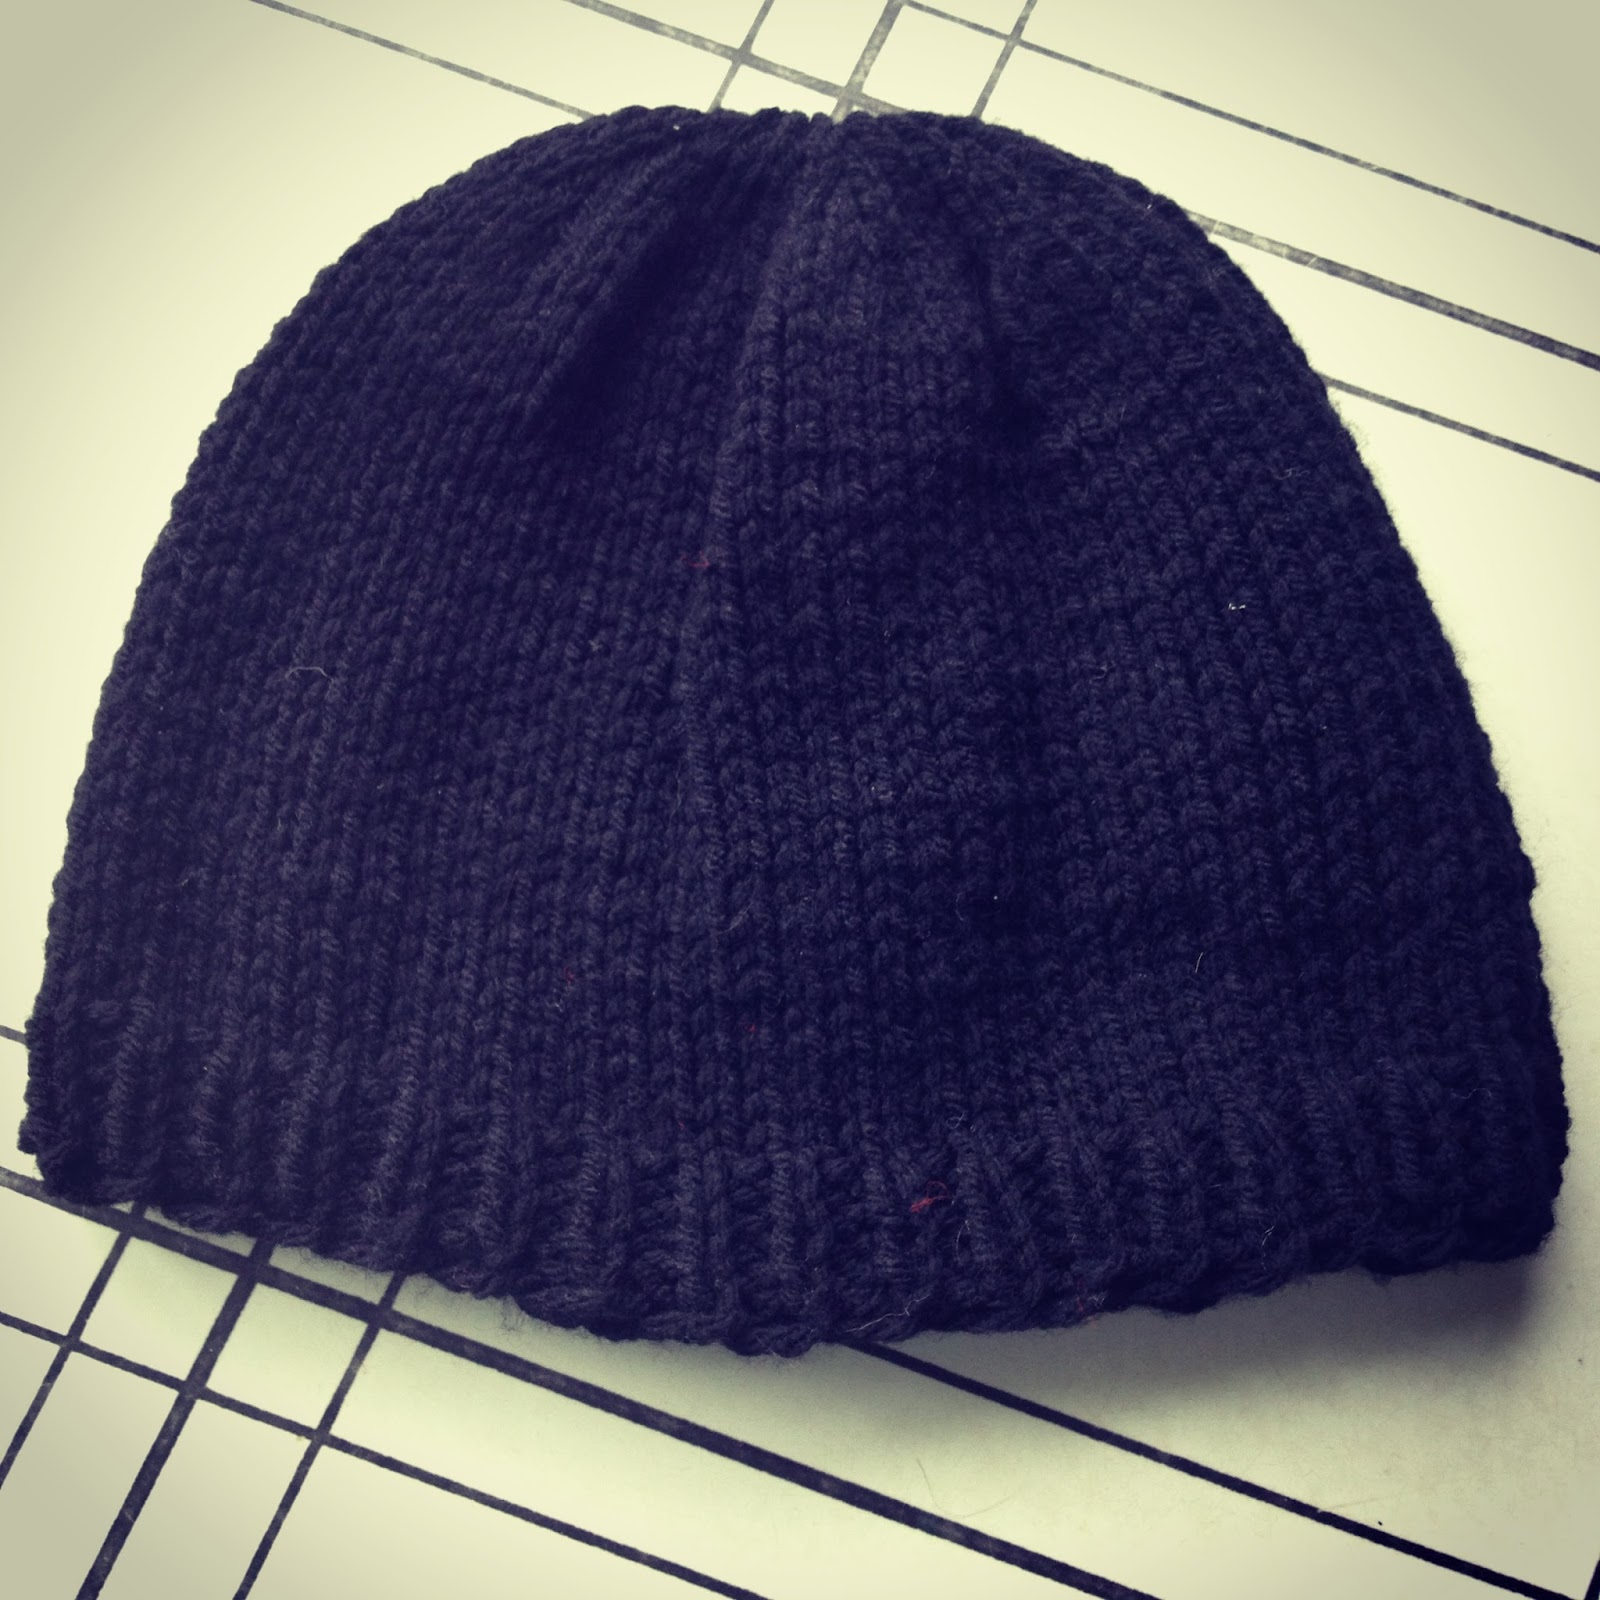 Chronicles of a Knaptime Knitter: FREE KNITTING PATTERN-Basic Mens Beanie